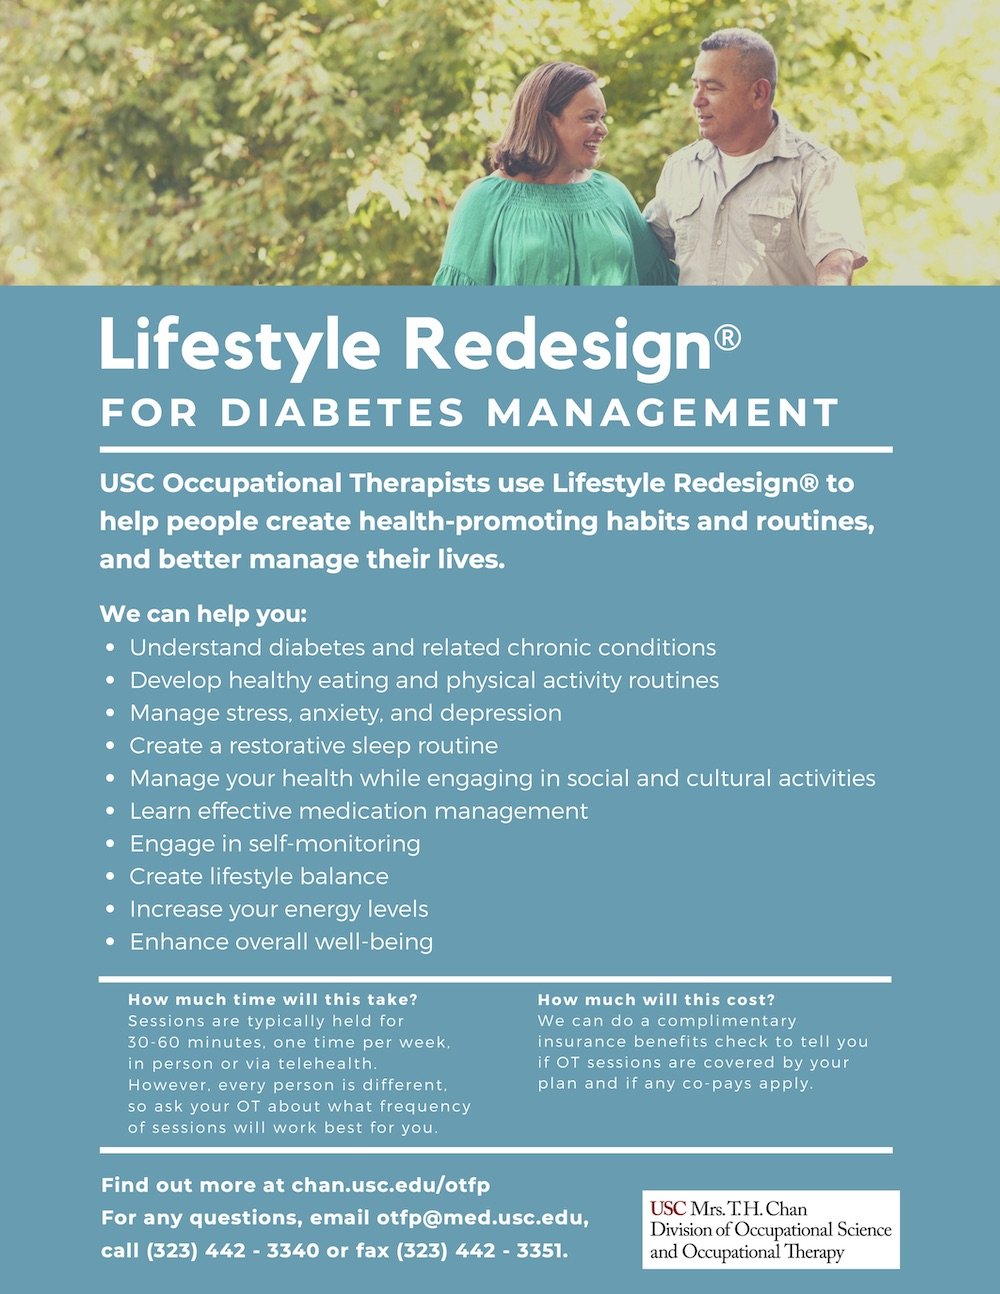 Lifestyle Redesign for Diabetes Management